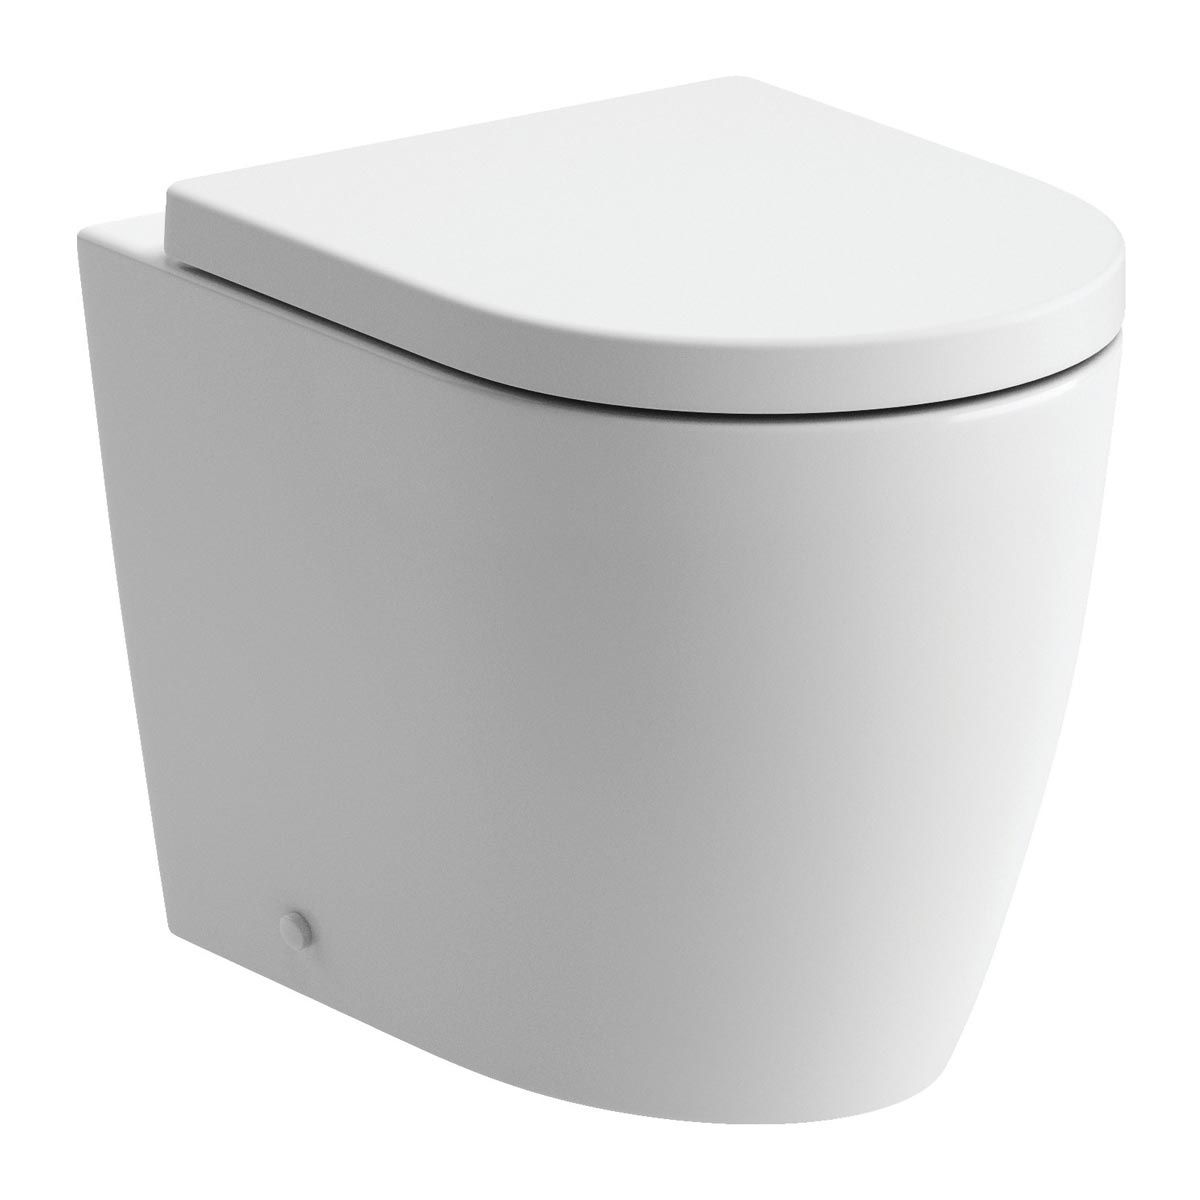 BTL Cilantro Back to Wall Toilet with Soft Close Seat